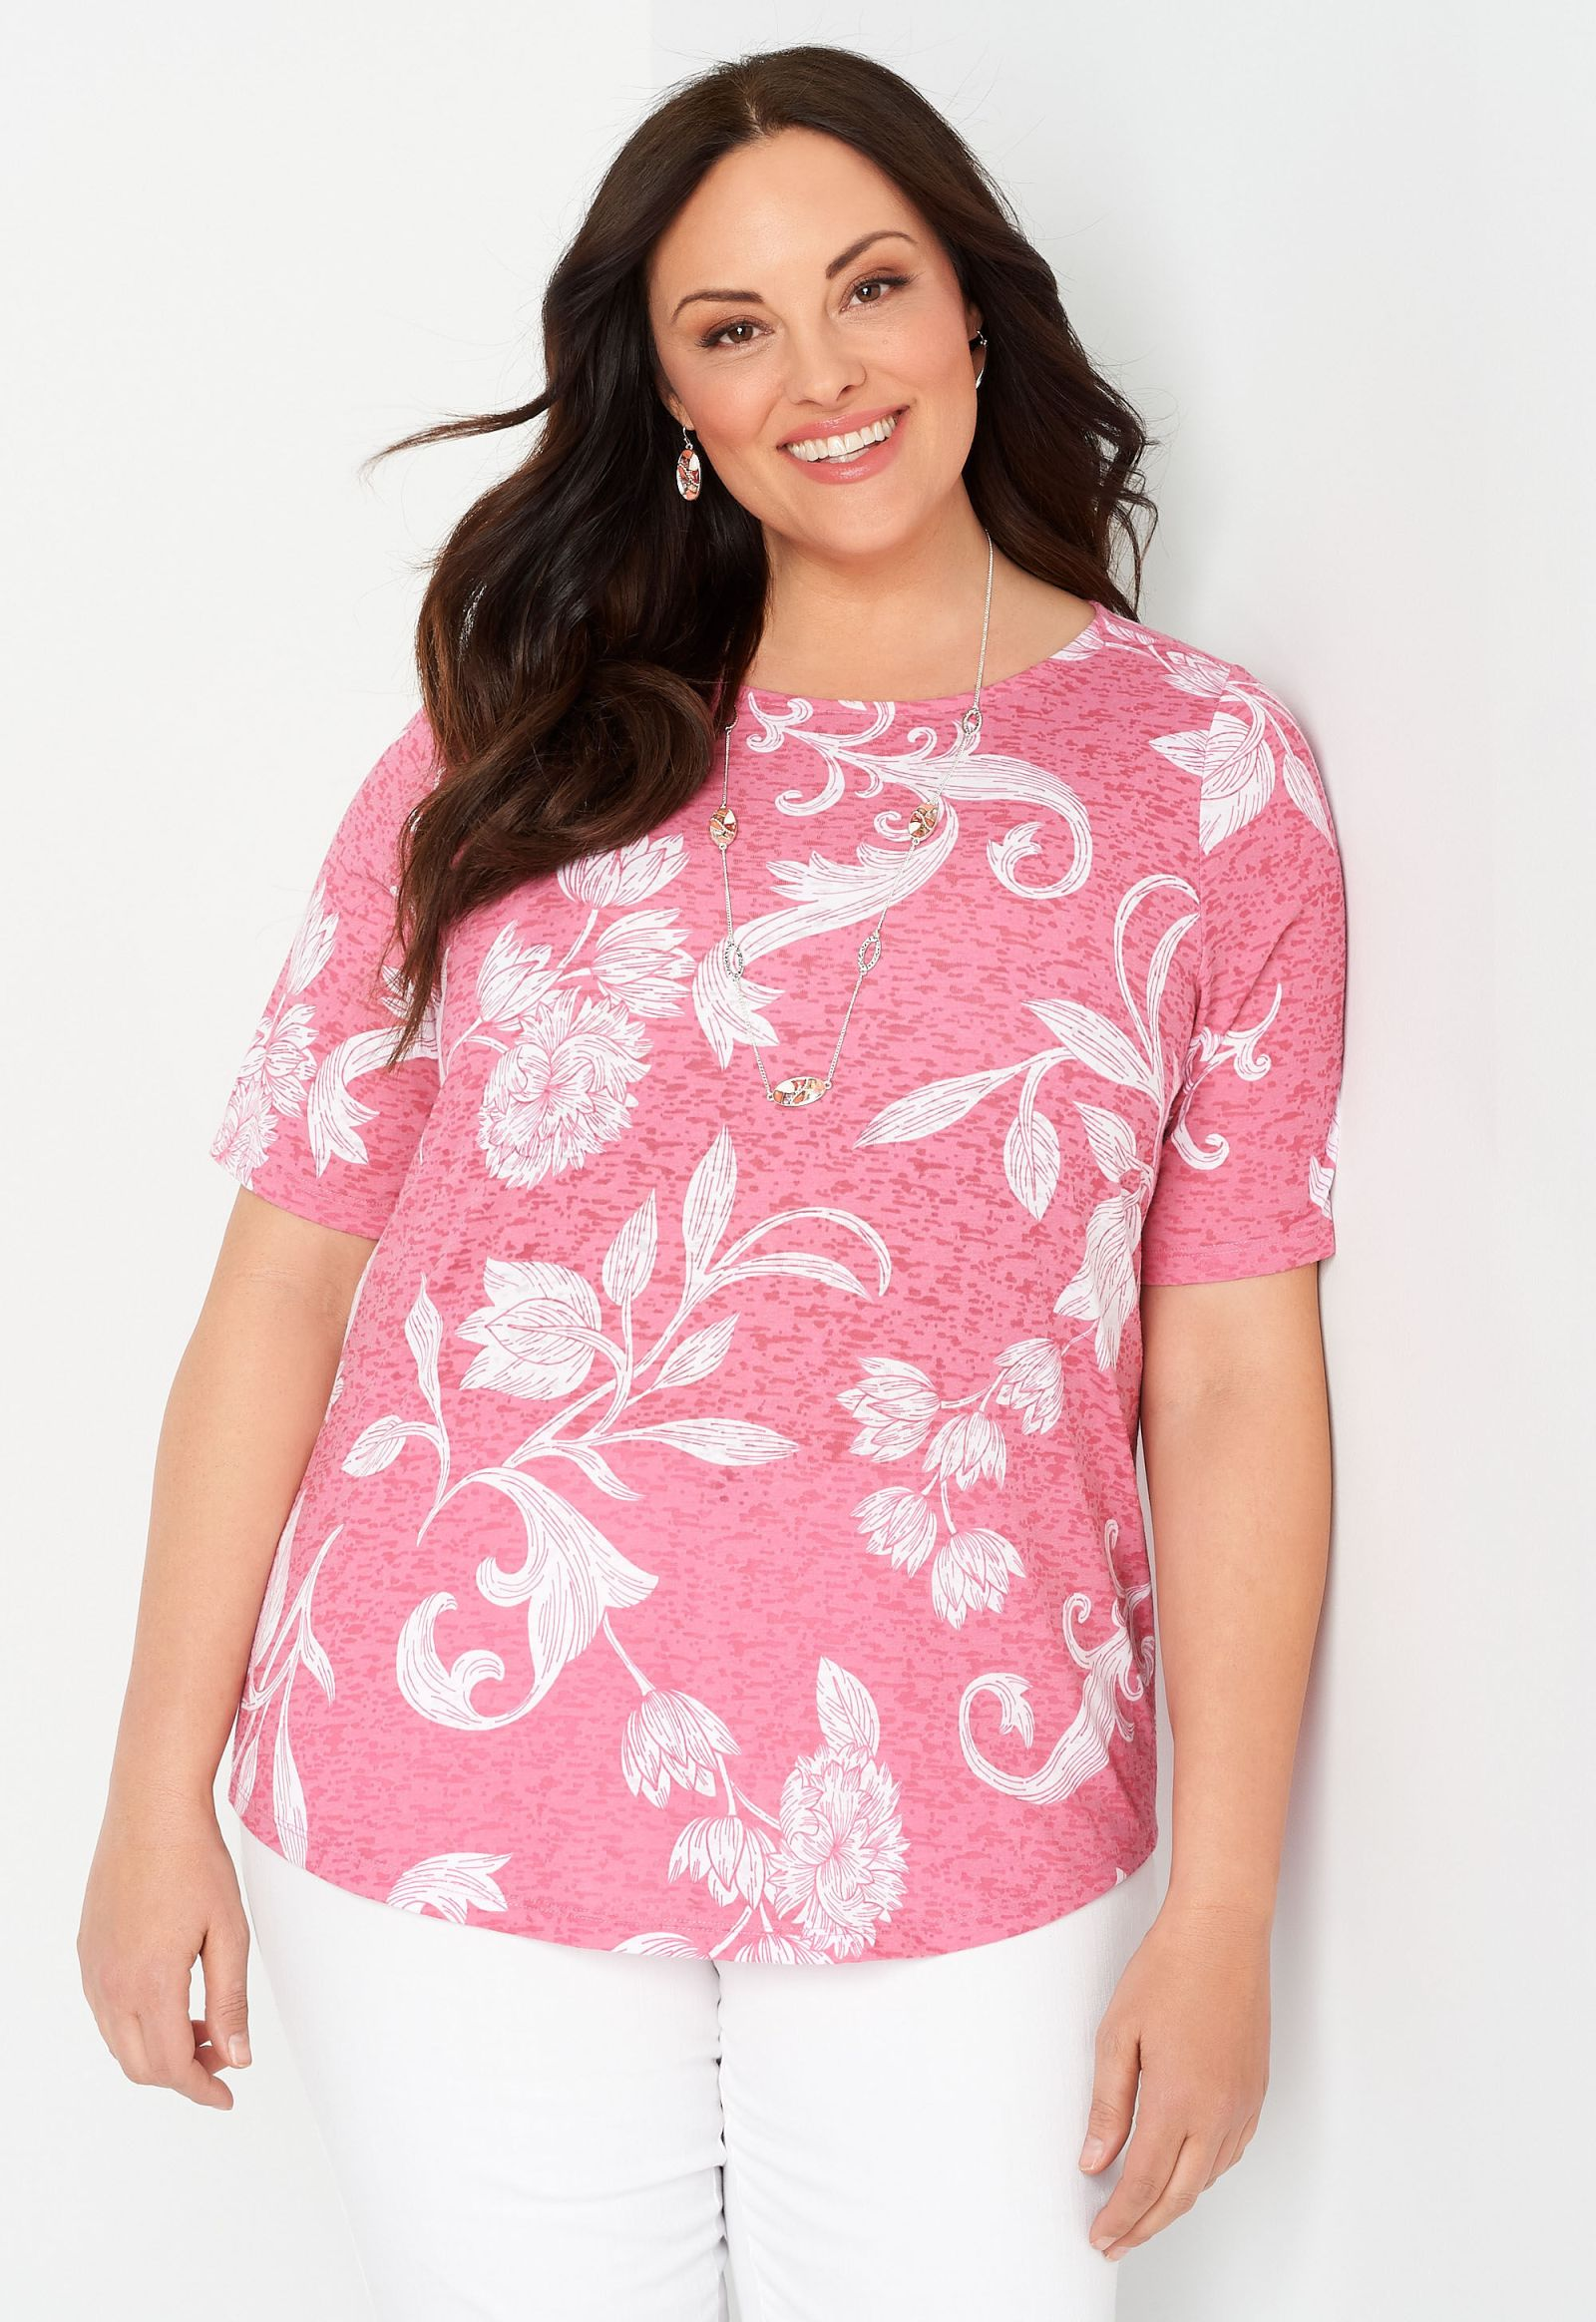 Floral Printed Burnout Plus Size Tee 2